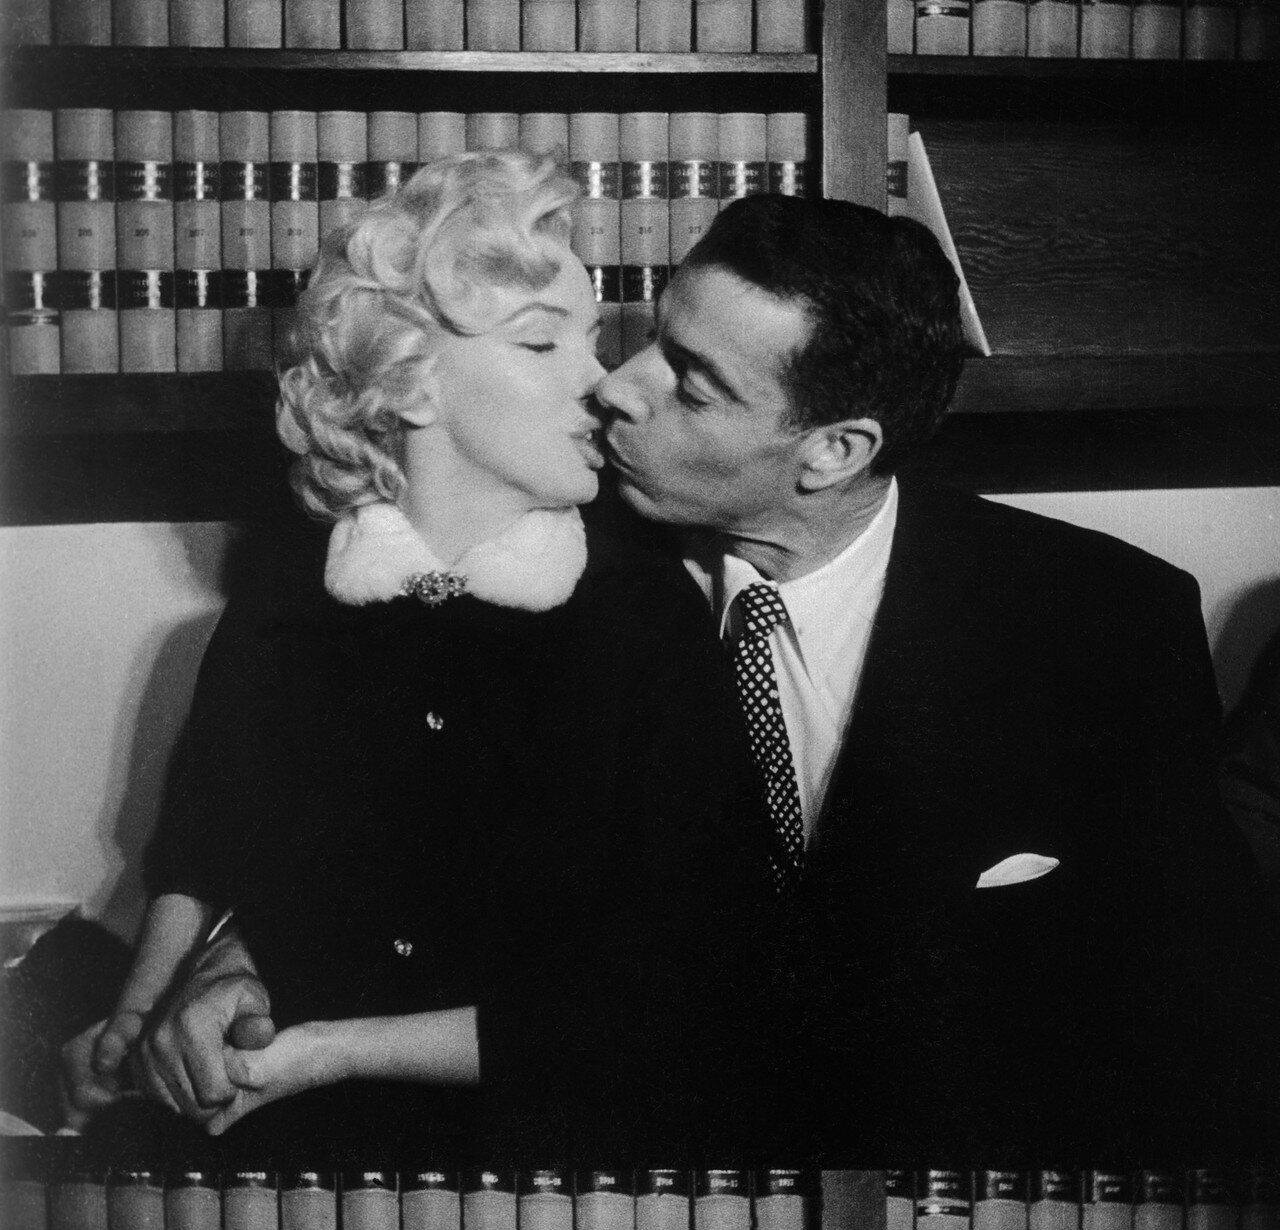 Marylin Monroe and Joe DiMaggio Kissing After Marriage